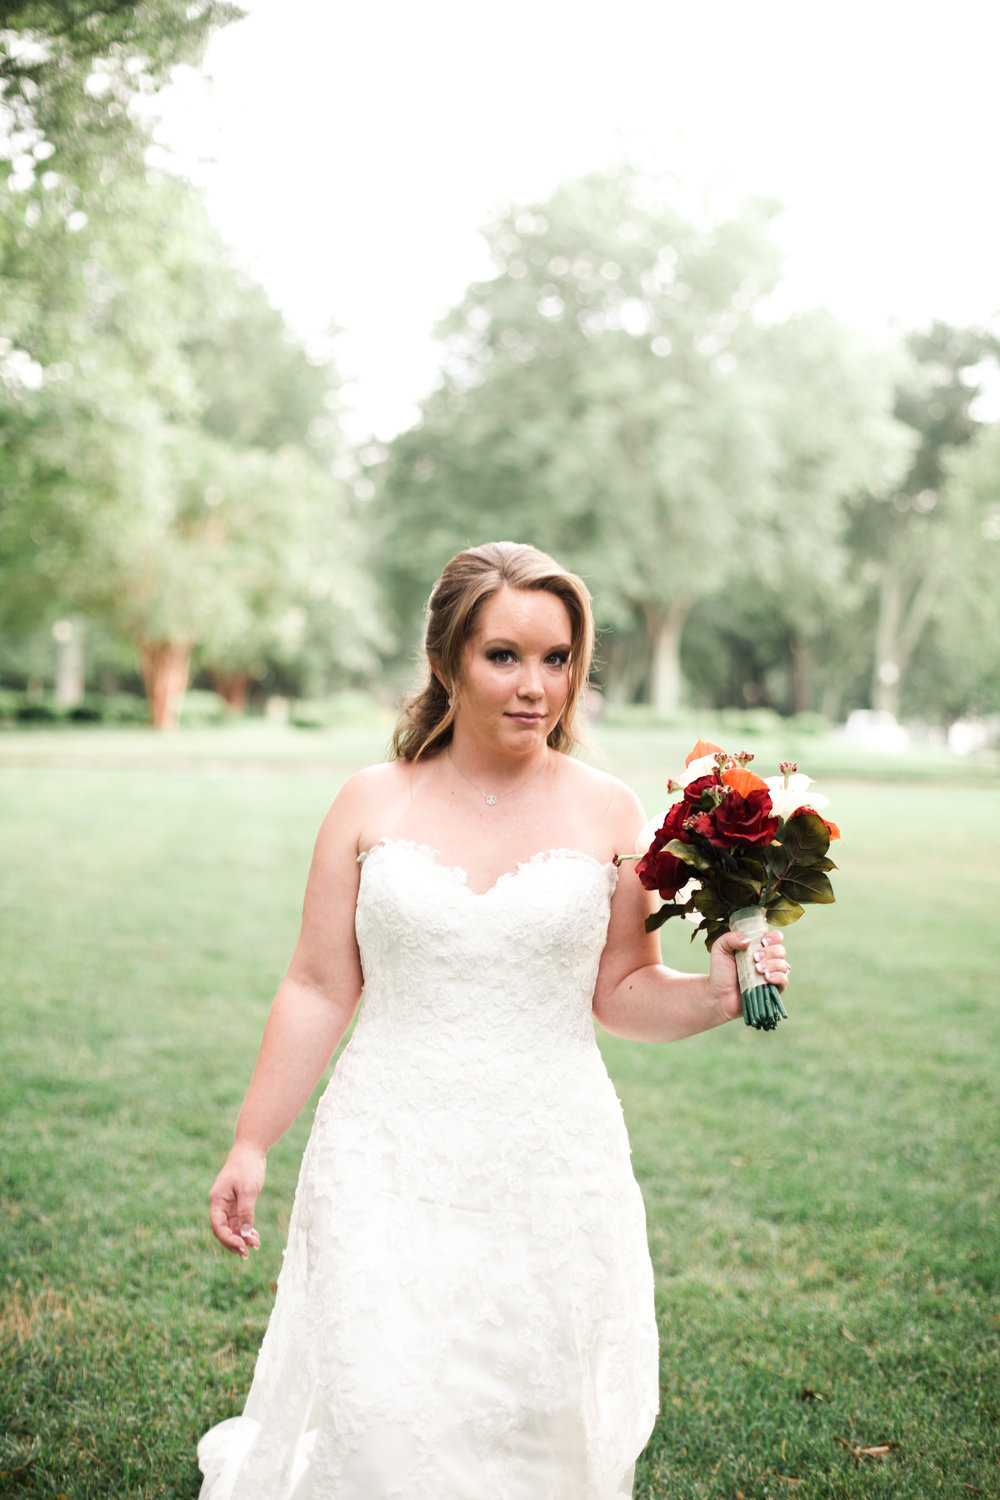 gabbie_bridal_poured_out_photography-31.jpg